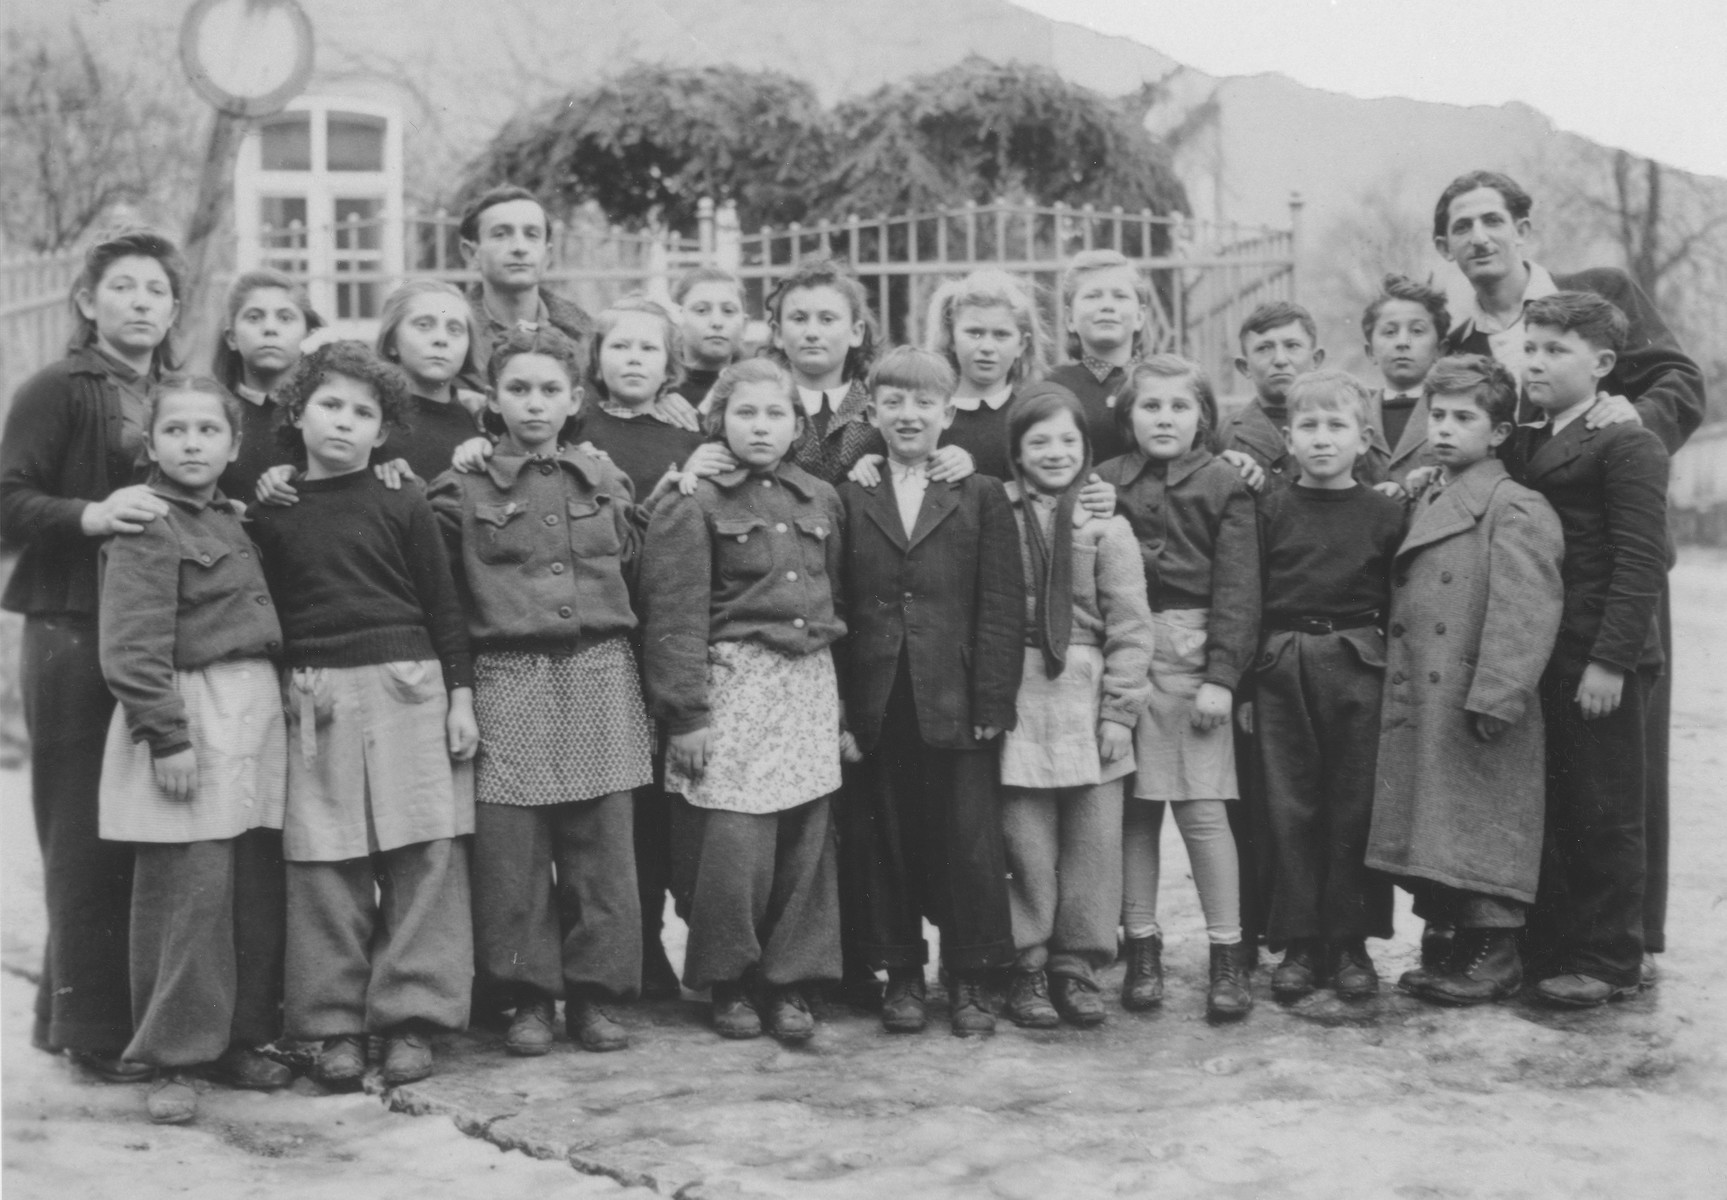 Class portrait of Jewish children and teachers at the Schauenstein displaced persons camp.